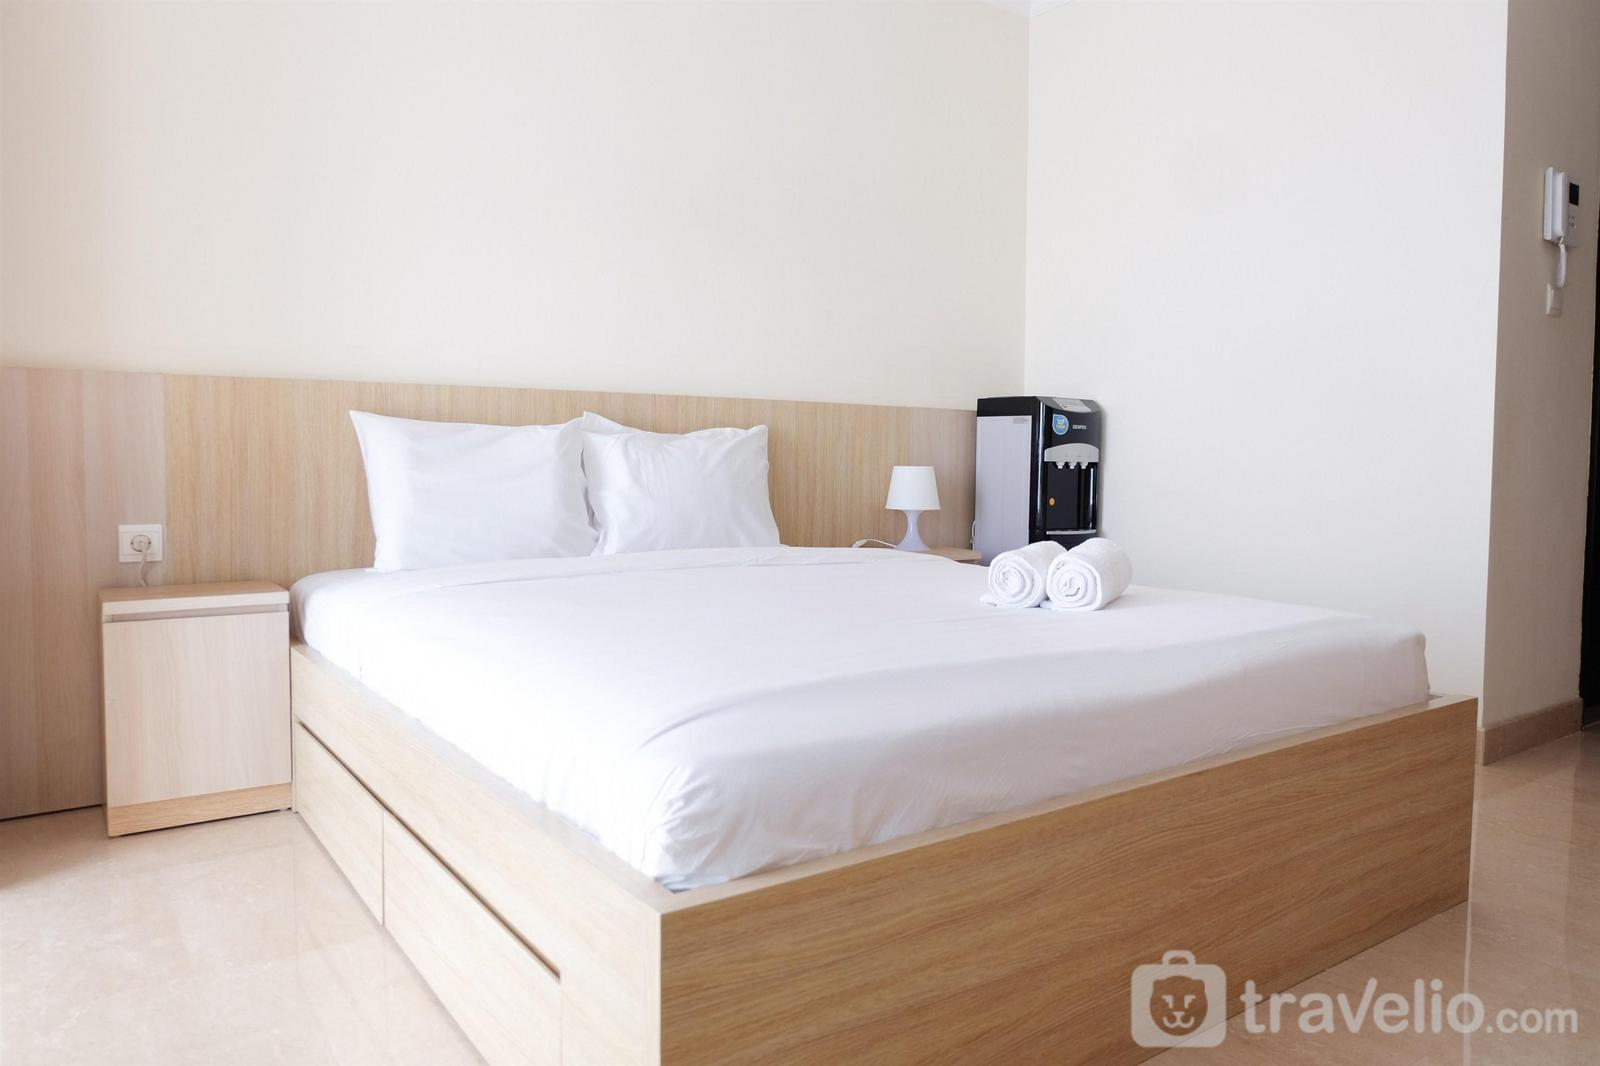 Menteng Park - Modern Look Studio Menteng Park Apartment By Travelio